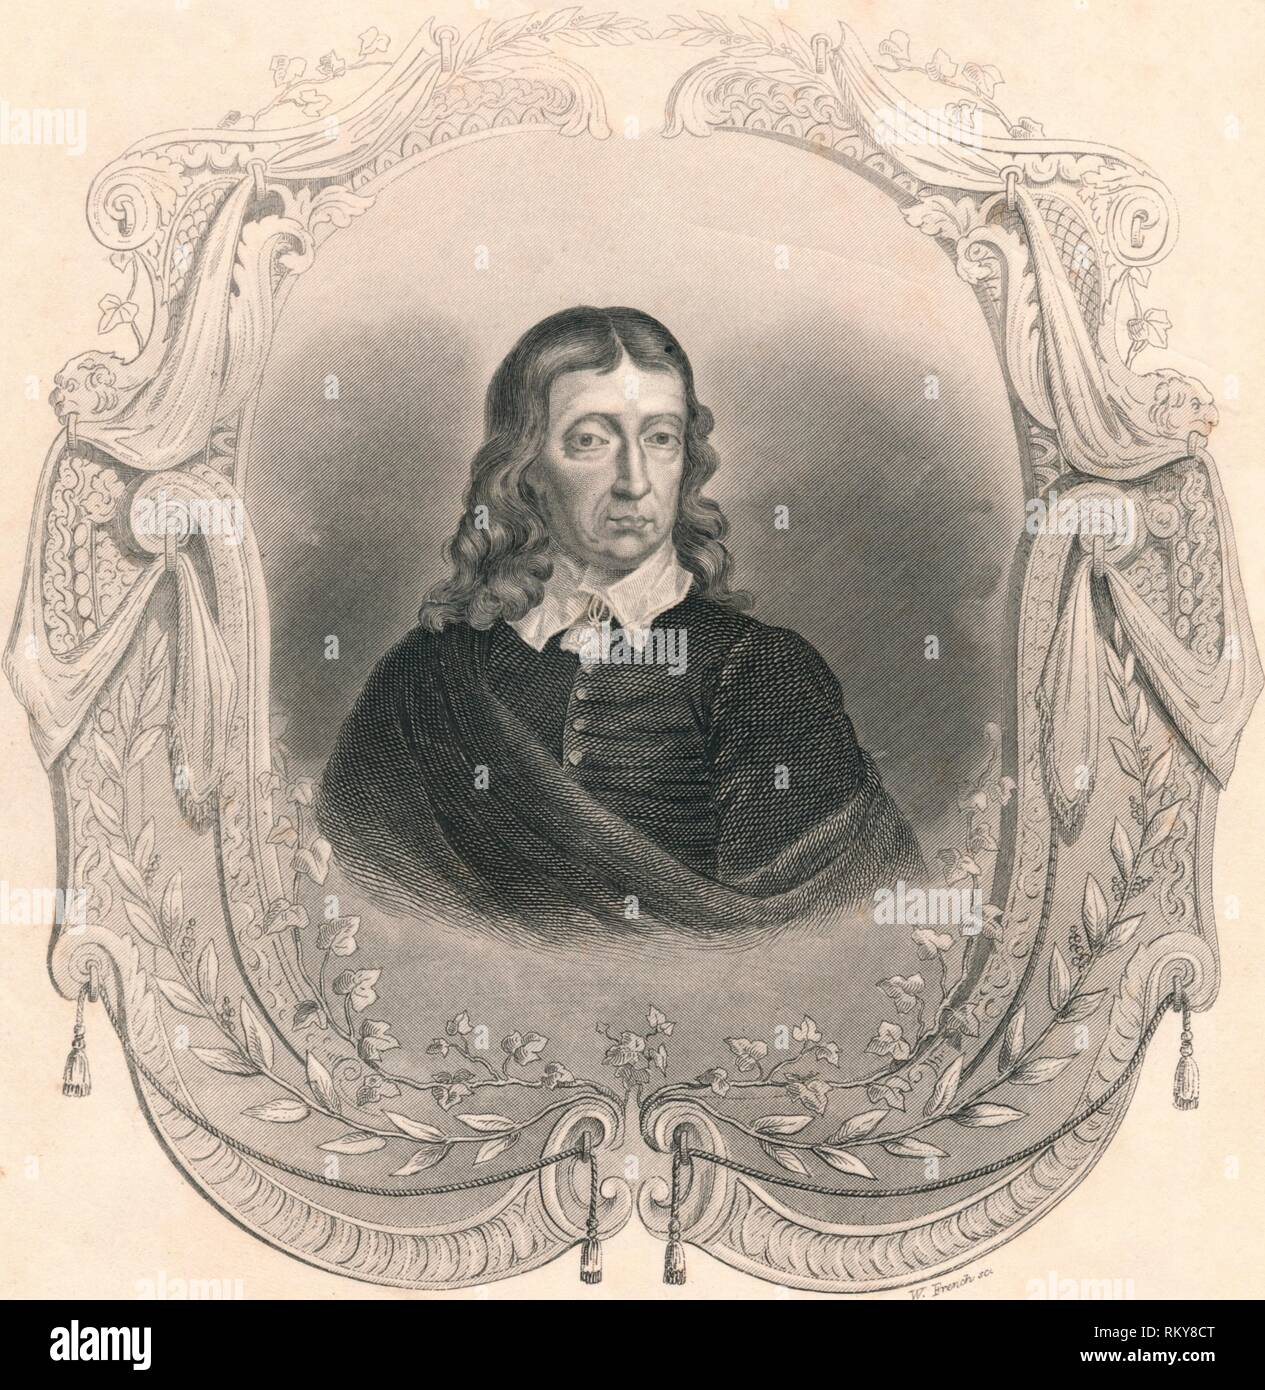 """'Milton', (mid 19th century). Portrait of English poet John Milton (1608-1674), whose most famous work is his epic """"Paradise Lost"""", first published in 1667. Milton became totally blind in about 1652. [John Tallis & Company, London & New York] - Stock Image"""